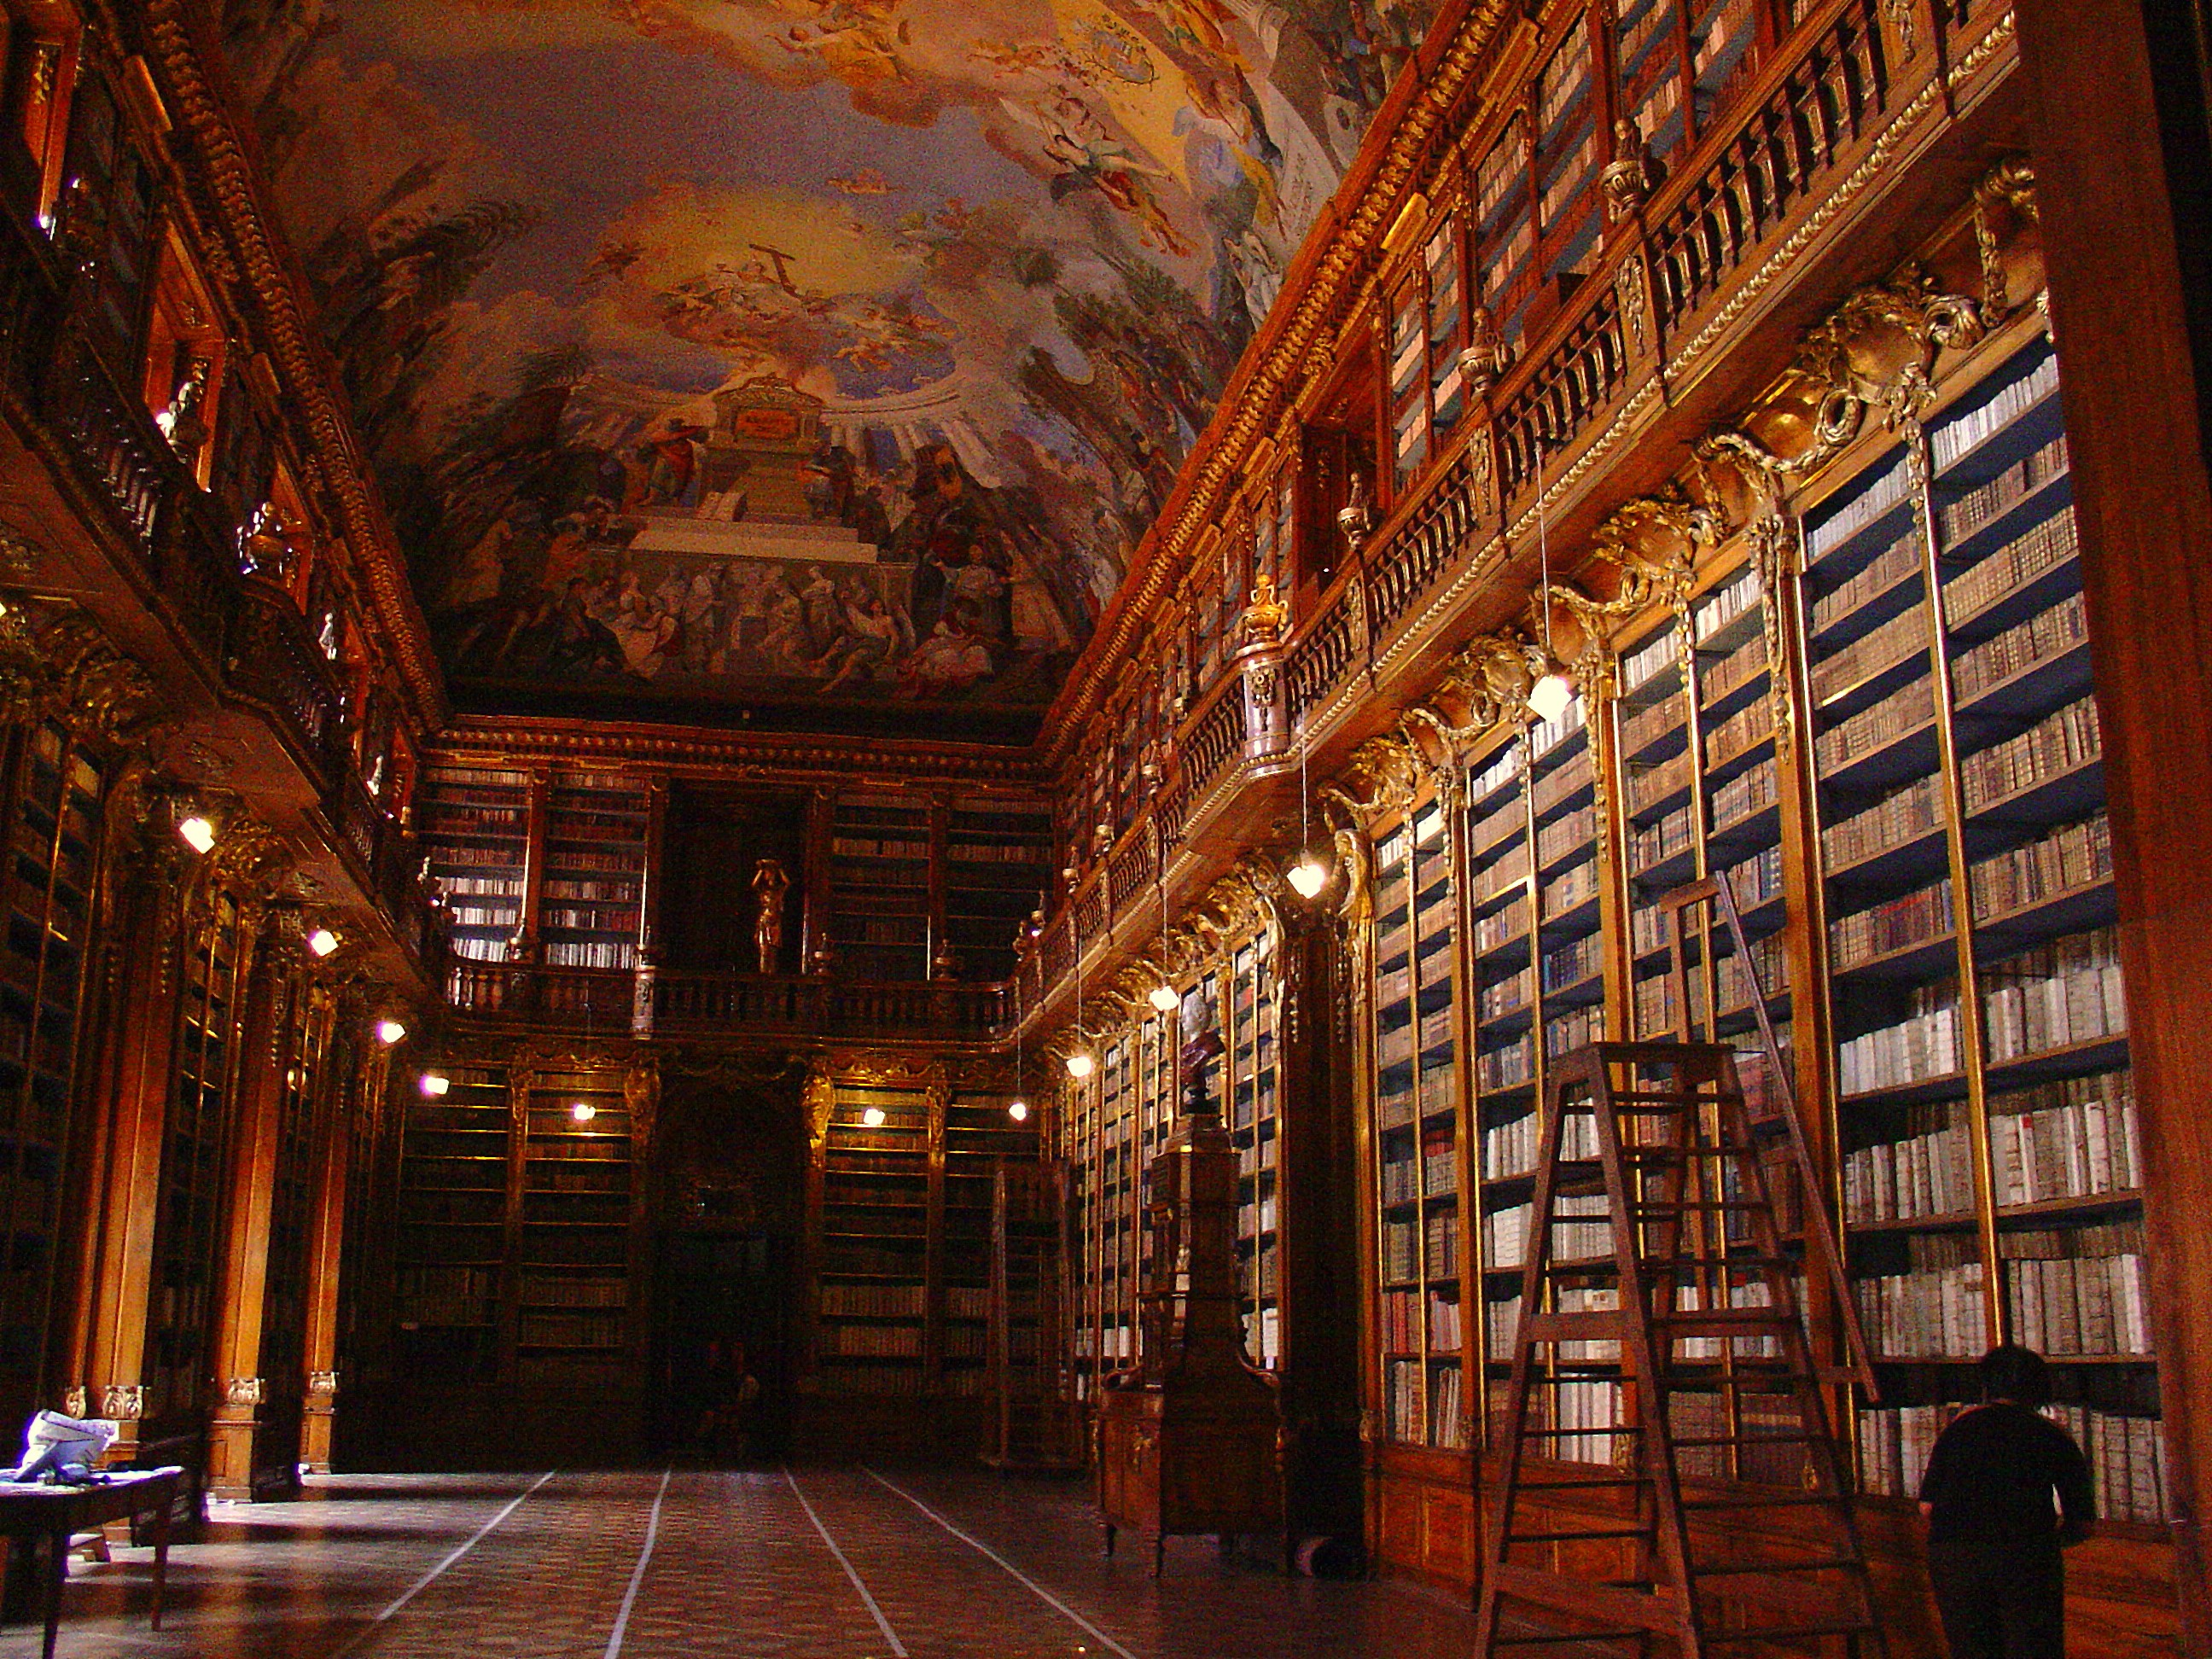 http://upload.wikimedia.org/wikipedia/commons/8/87/Biblioth%C3%A8que_monast%C3%A8re_Strahov.jpg